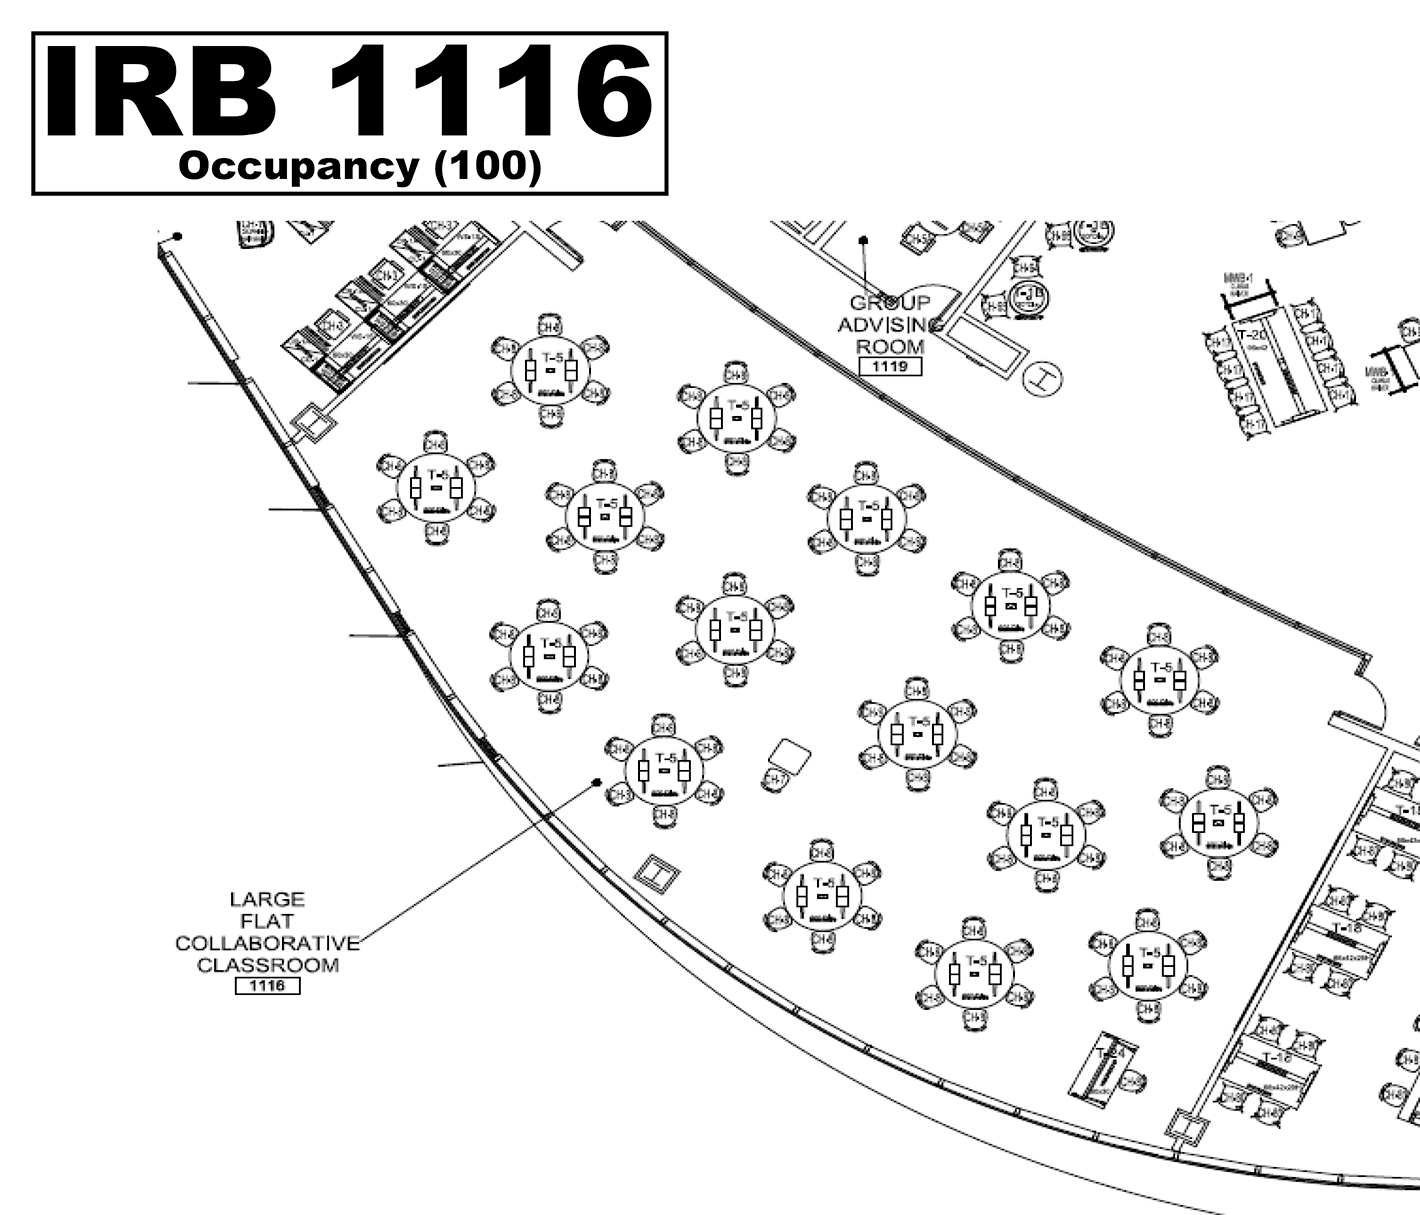 IRB1116 floorplan